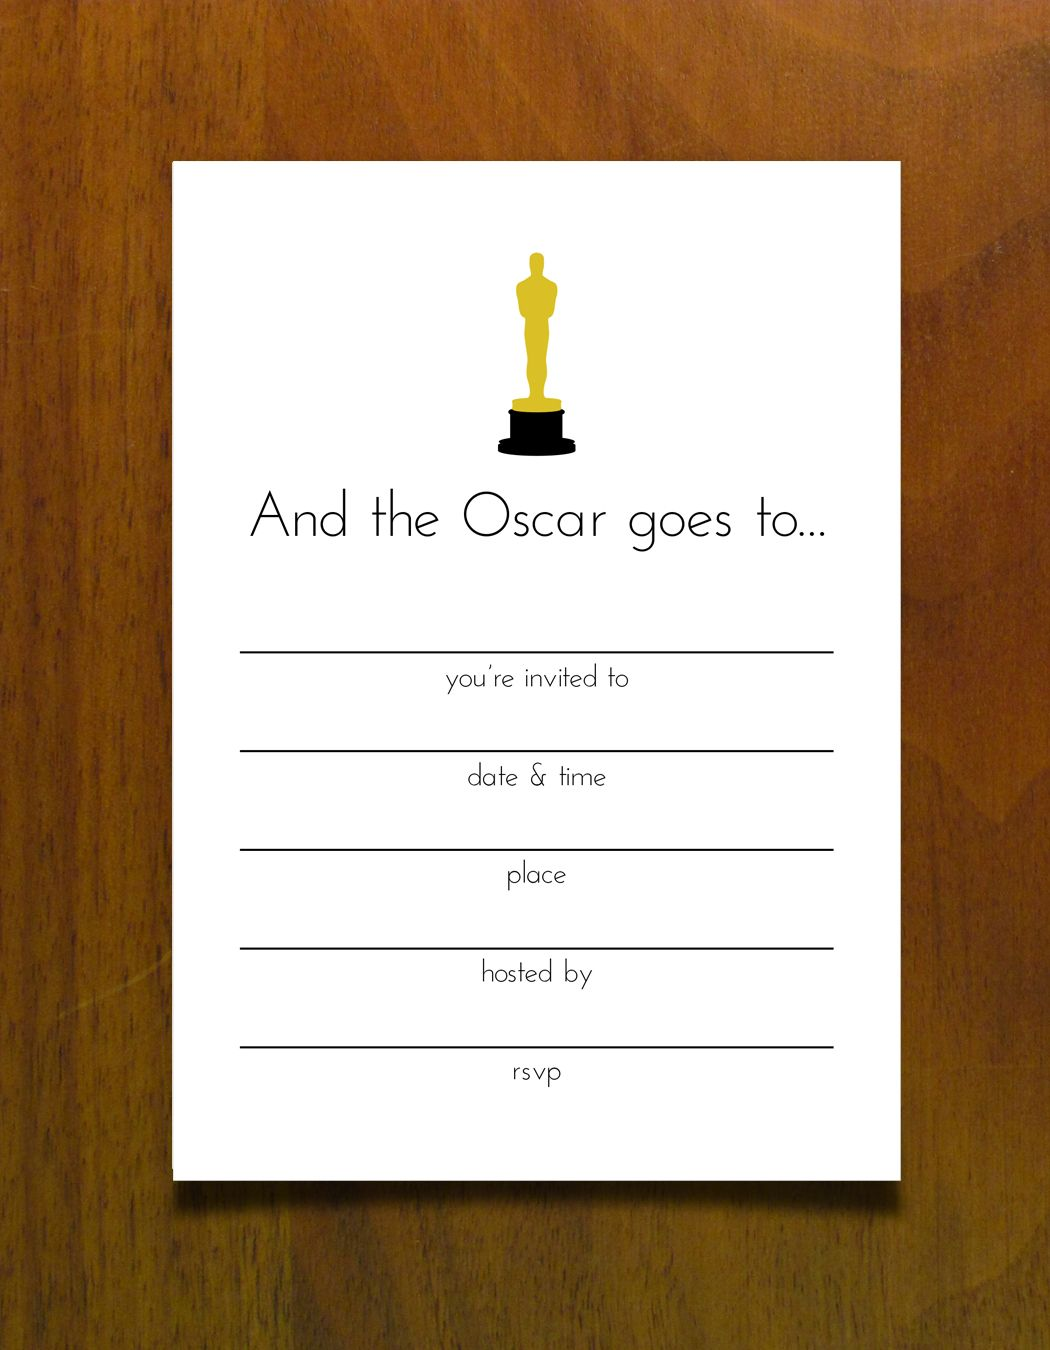 Free Printables for an Oscar Party #invite #oscars #free | oscar ...